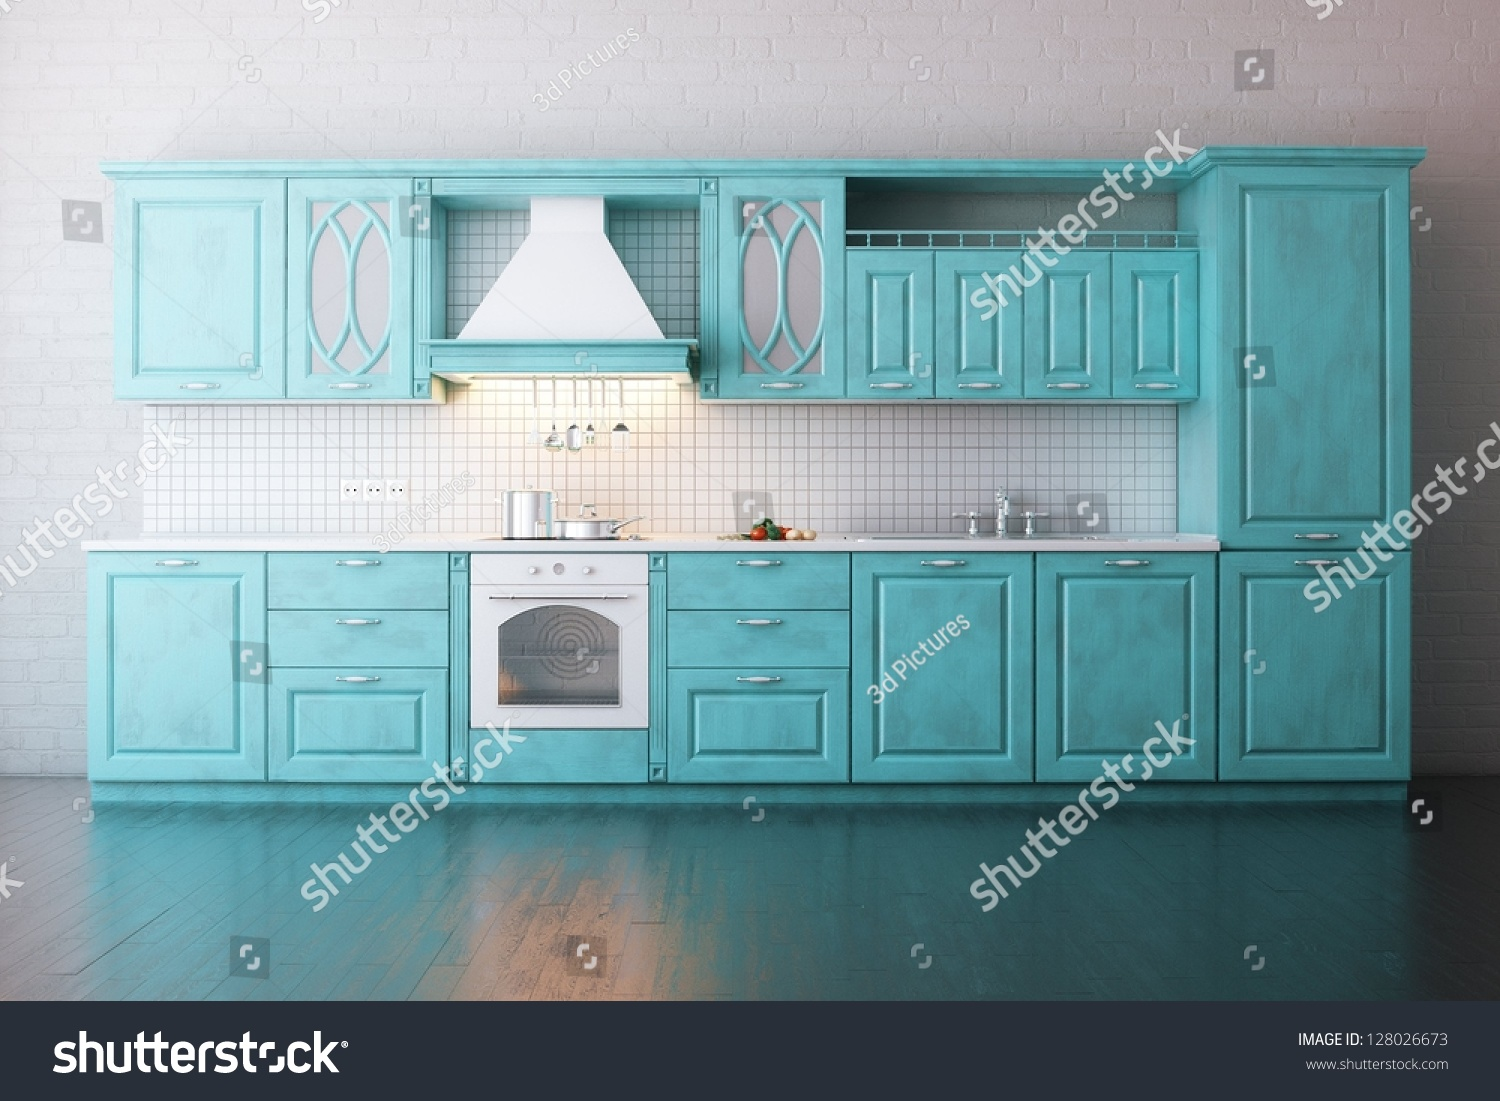 Turquoise Kitchen Classic Wooden Kitchen Painted Turquoise Stock Illustration